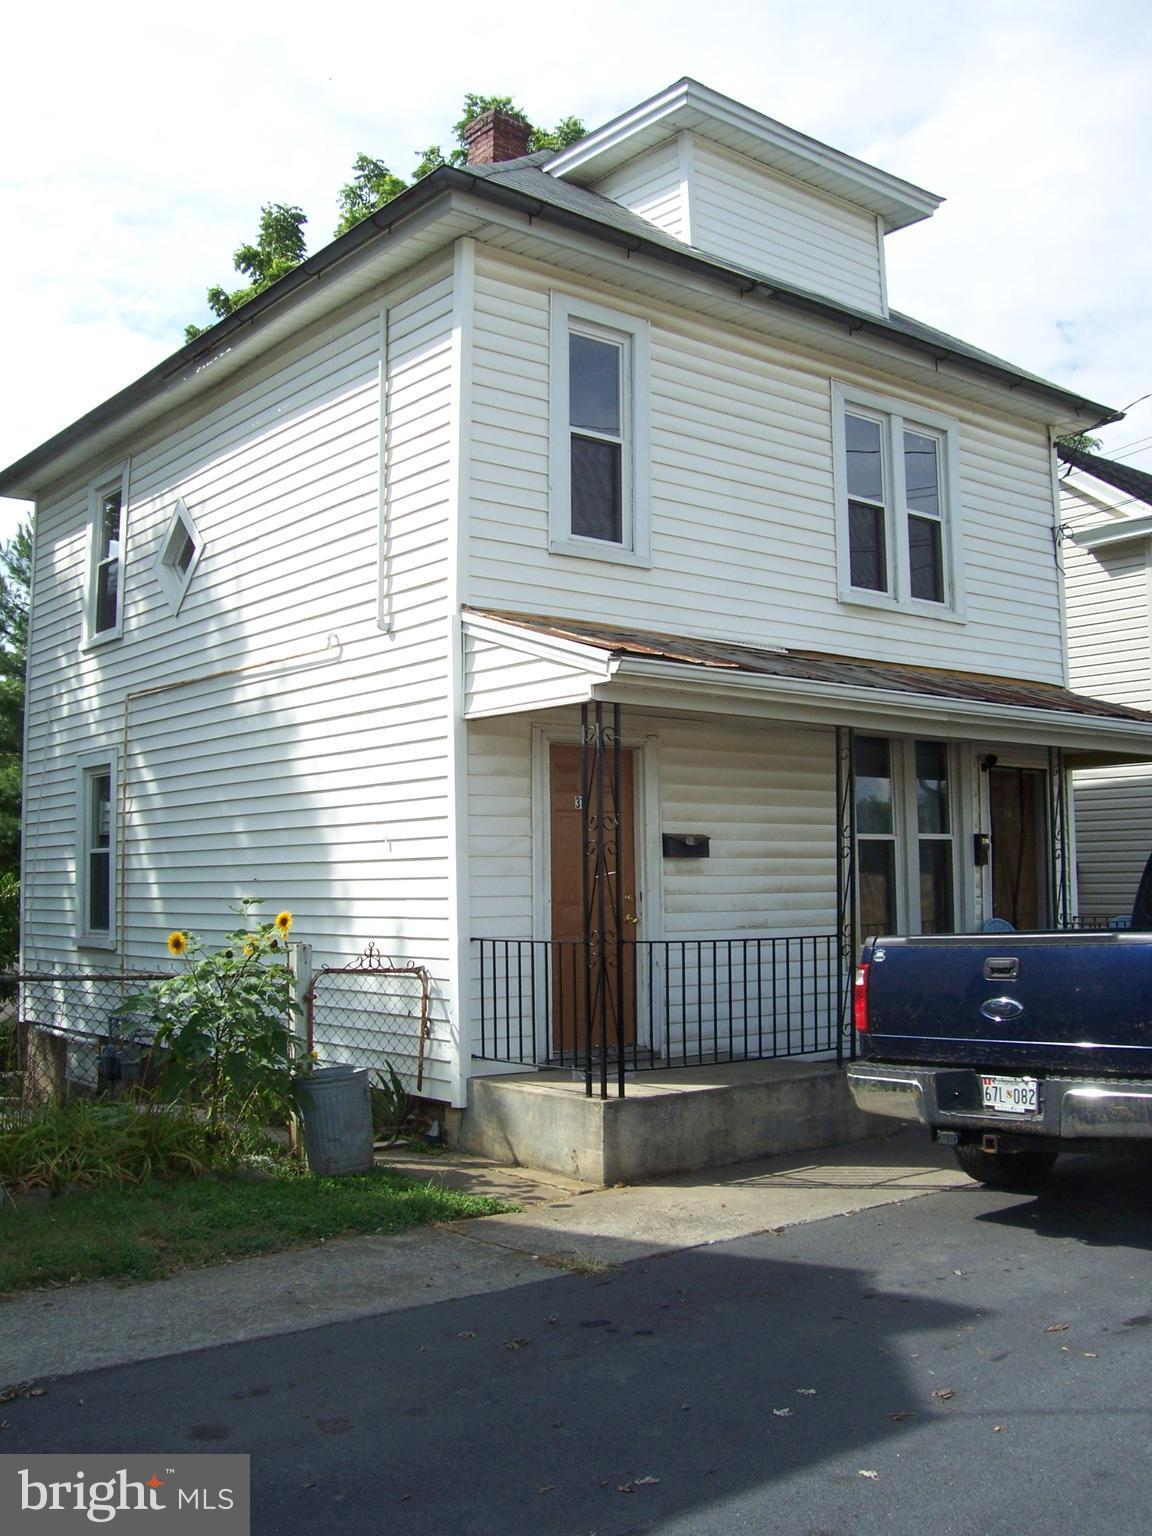 Nice Duplex on a quite one way street 314 & 316 Auburn St. Each side features a great front porch, H